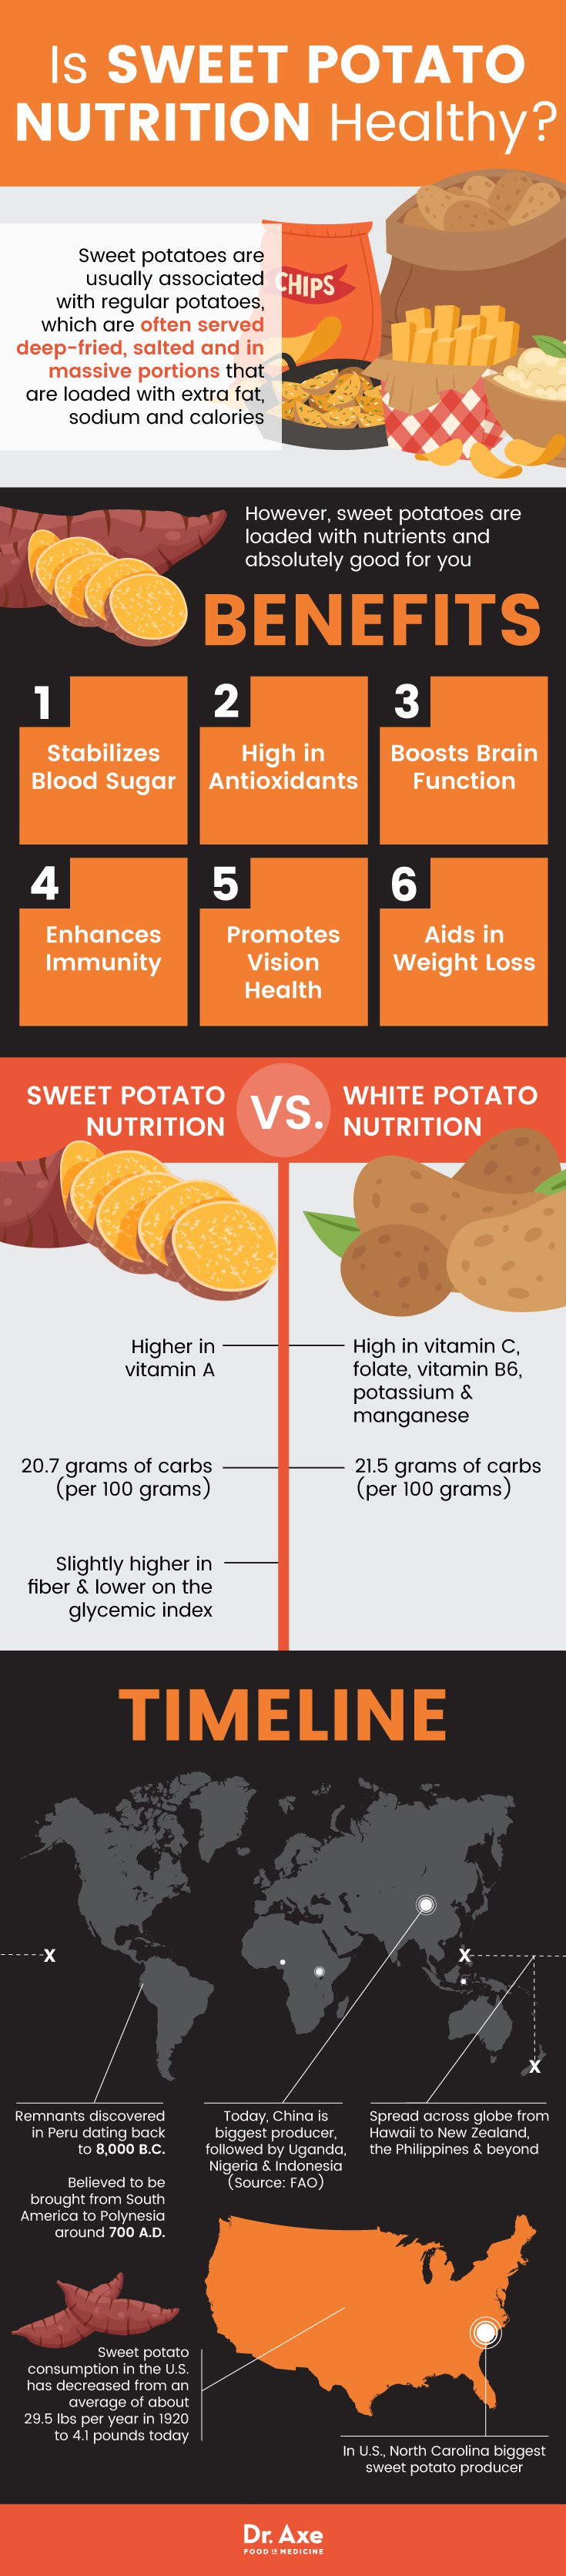 Potato Nutrition Information  Sweet Potato Nutrition Facts PLUS Benefits DrAxe